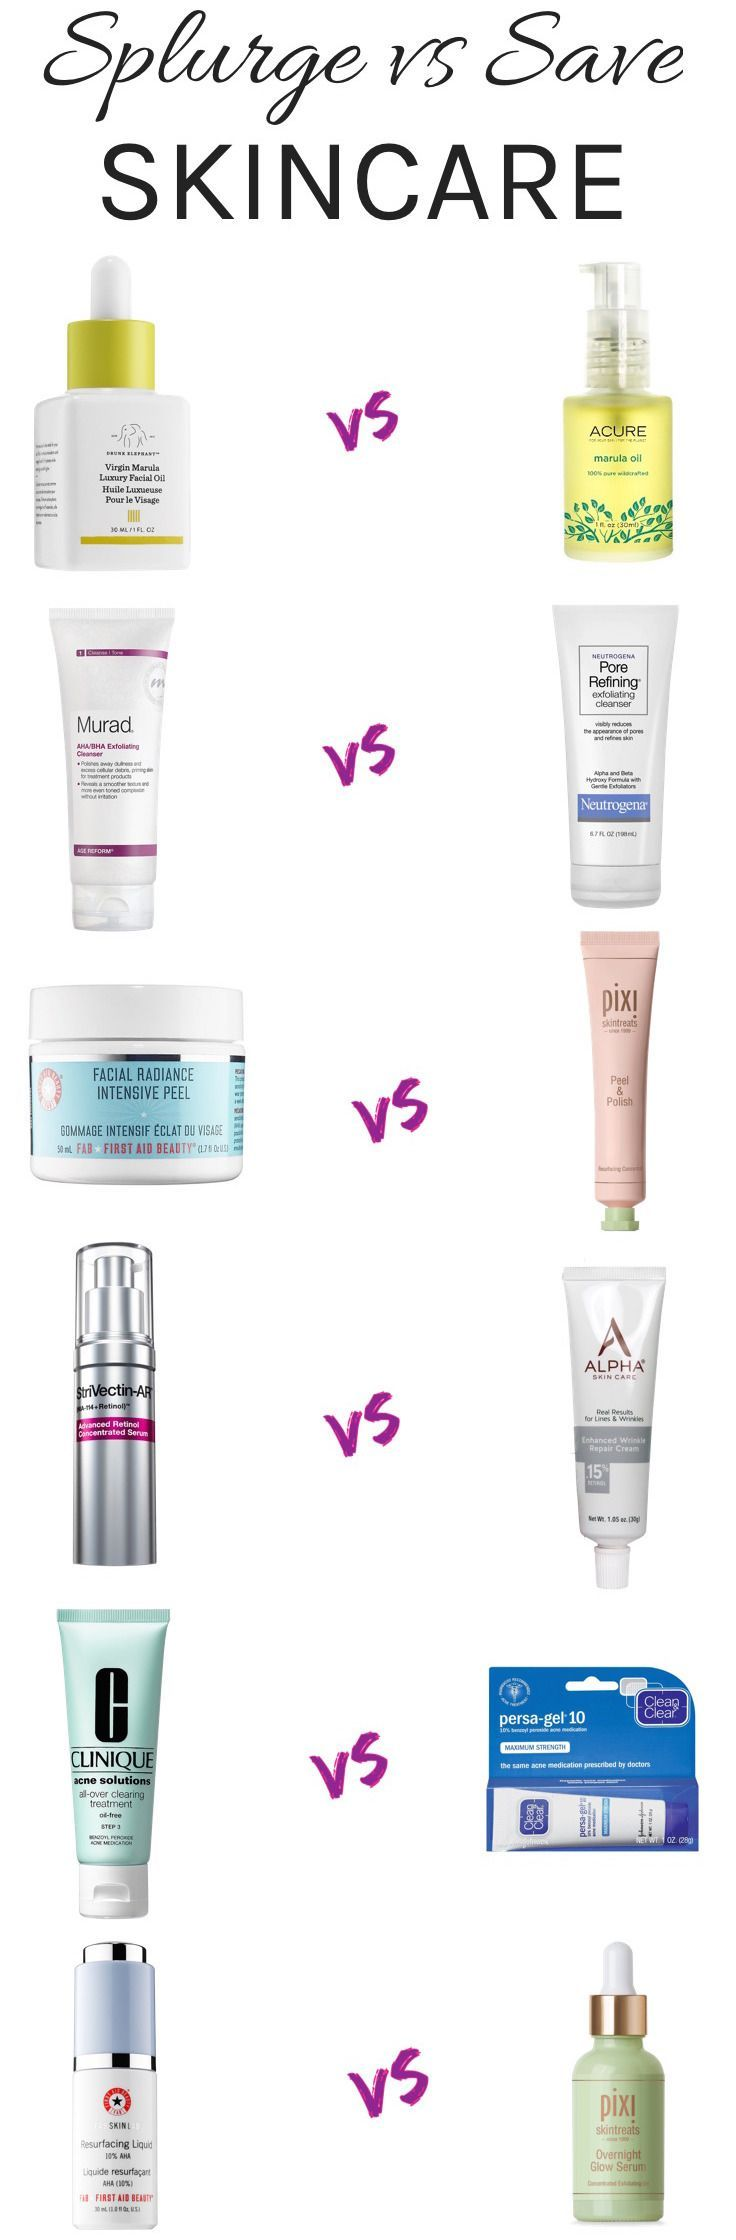 You don't need to spend a fortune to have healthy, glowing skin! Whether you're looking to protect, brighten or moisturize your skin, there's no shortage of top-notch skincare options at the drugstore that work just as well as their pricey high-end counterparts! Don't miss these affordable alternatives (skincare dupes) that allow you to have a great skincare regimen even on a shoestring beauty budget!